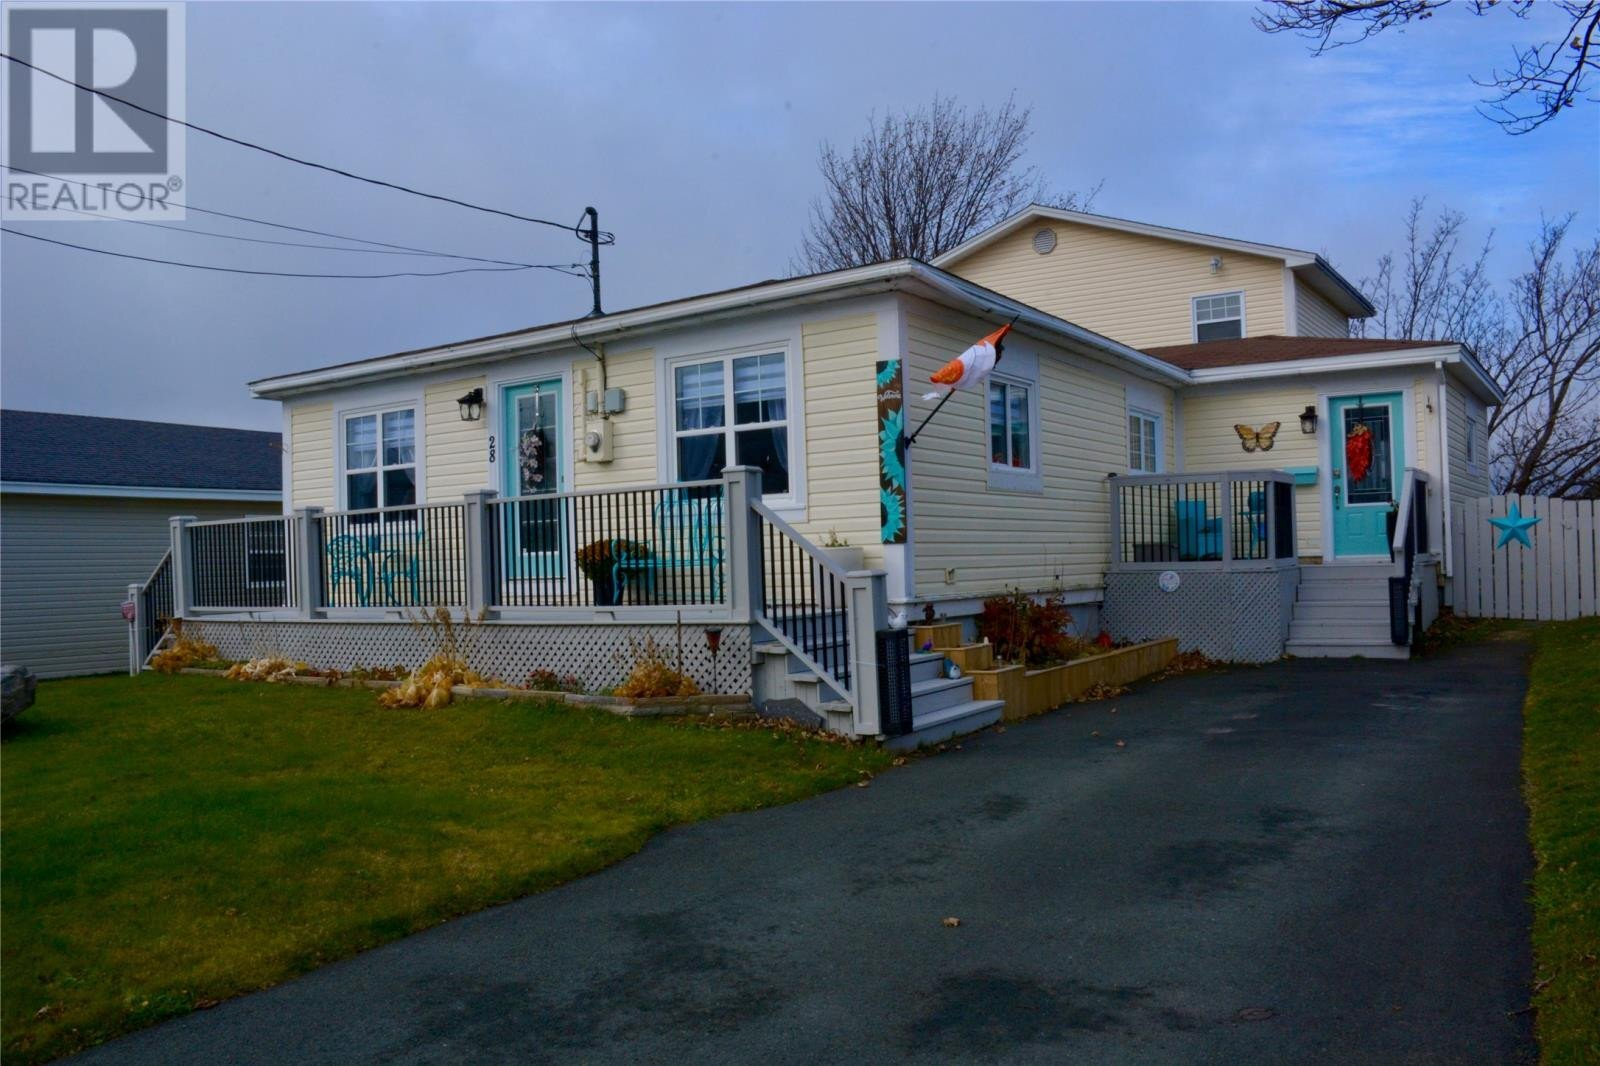 House for sale at 28 Conners Ave St. John's Newfoundland - MLS: 1223793